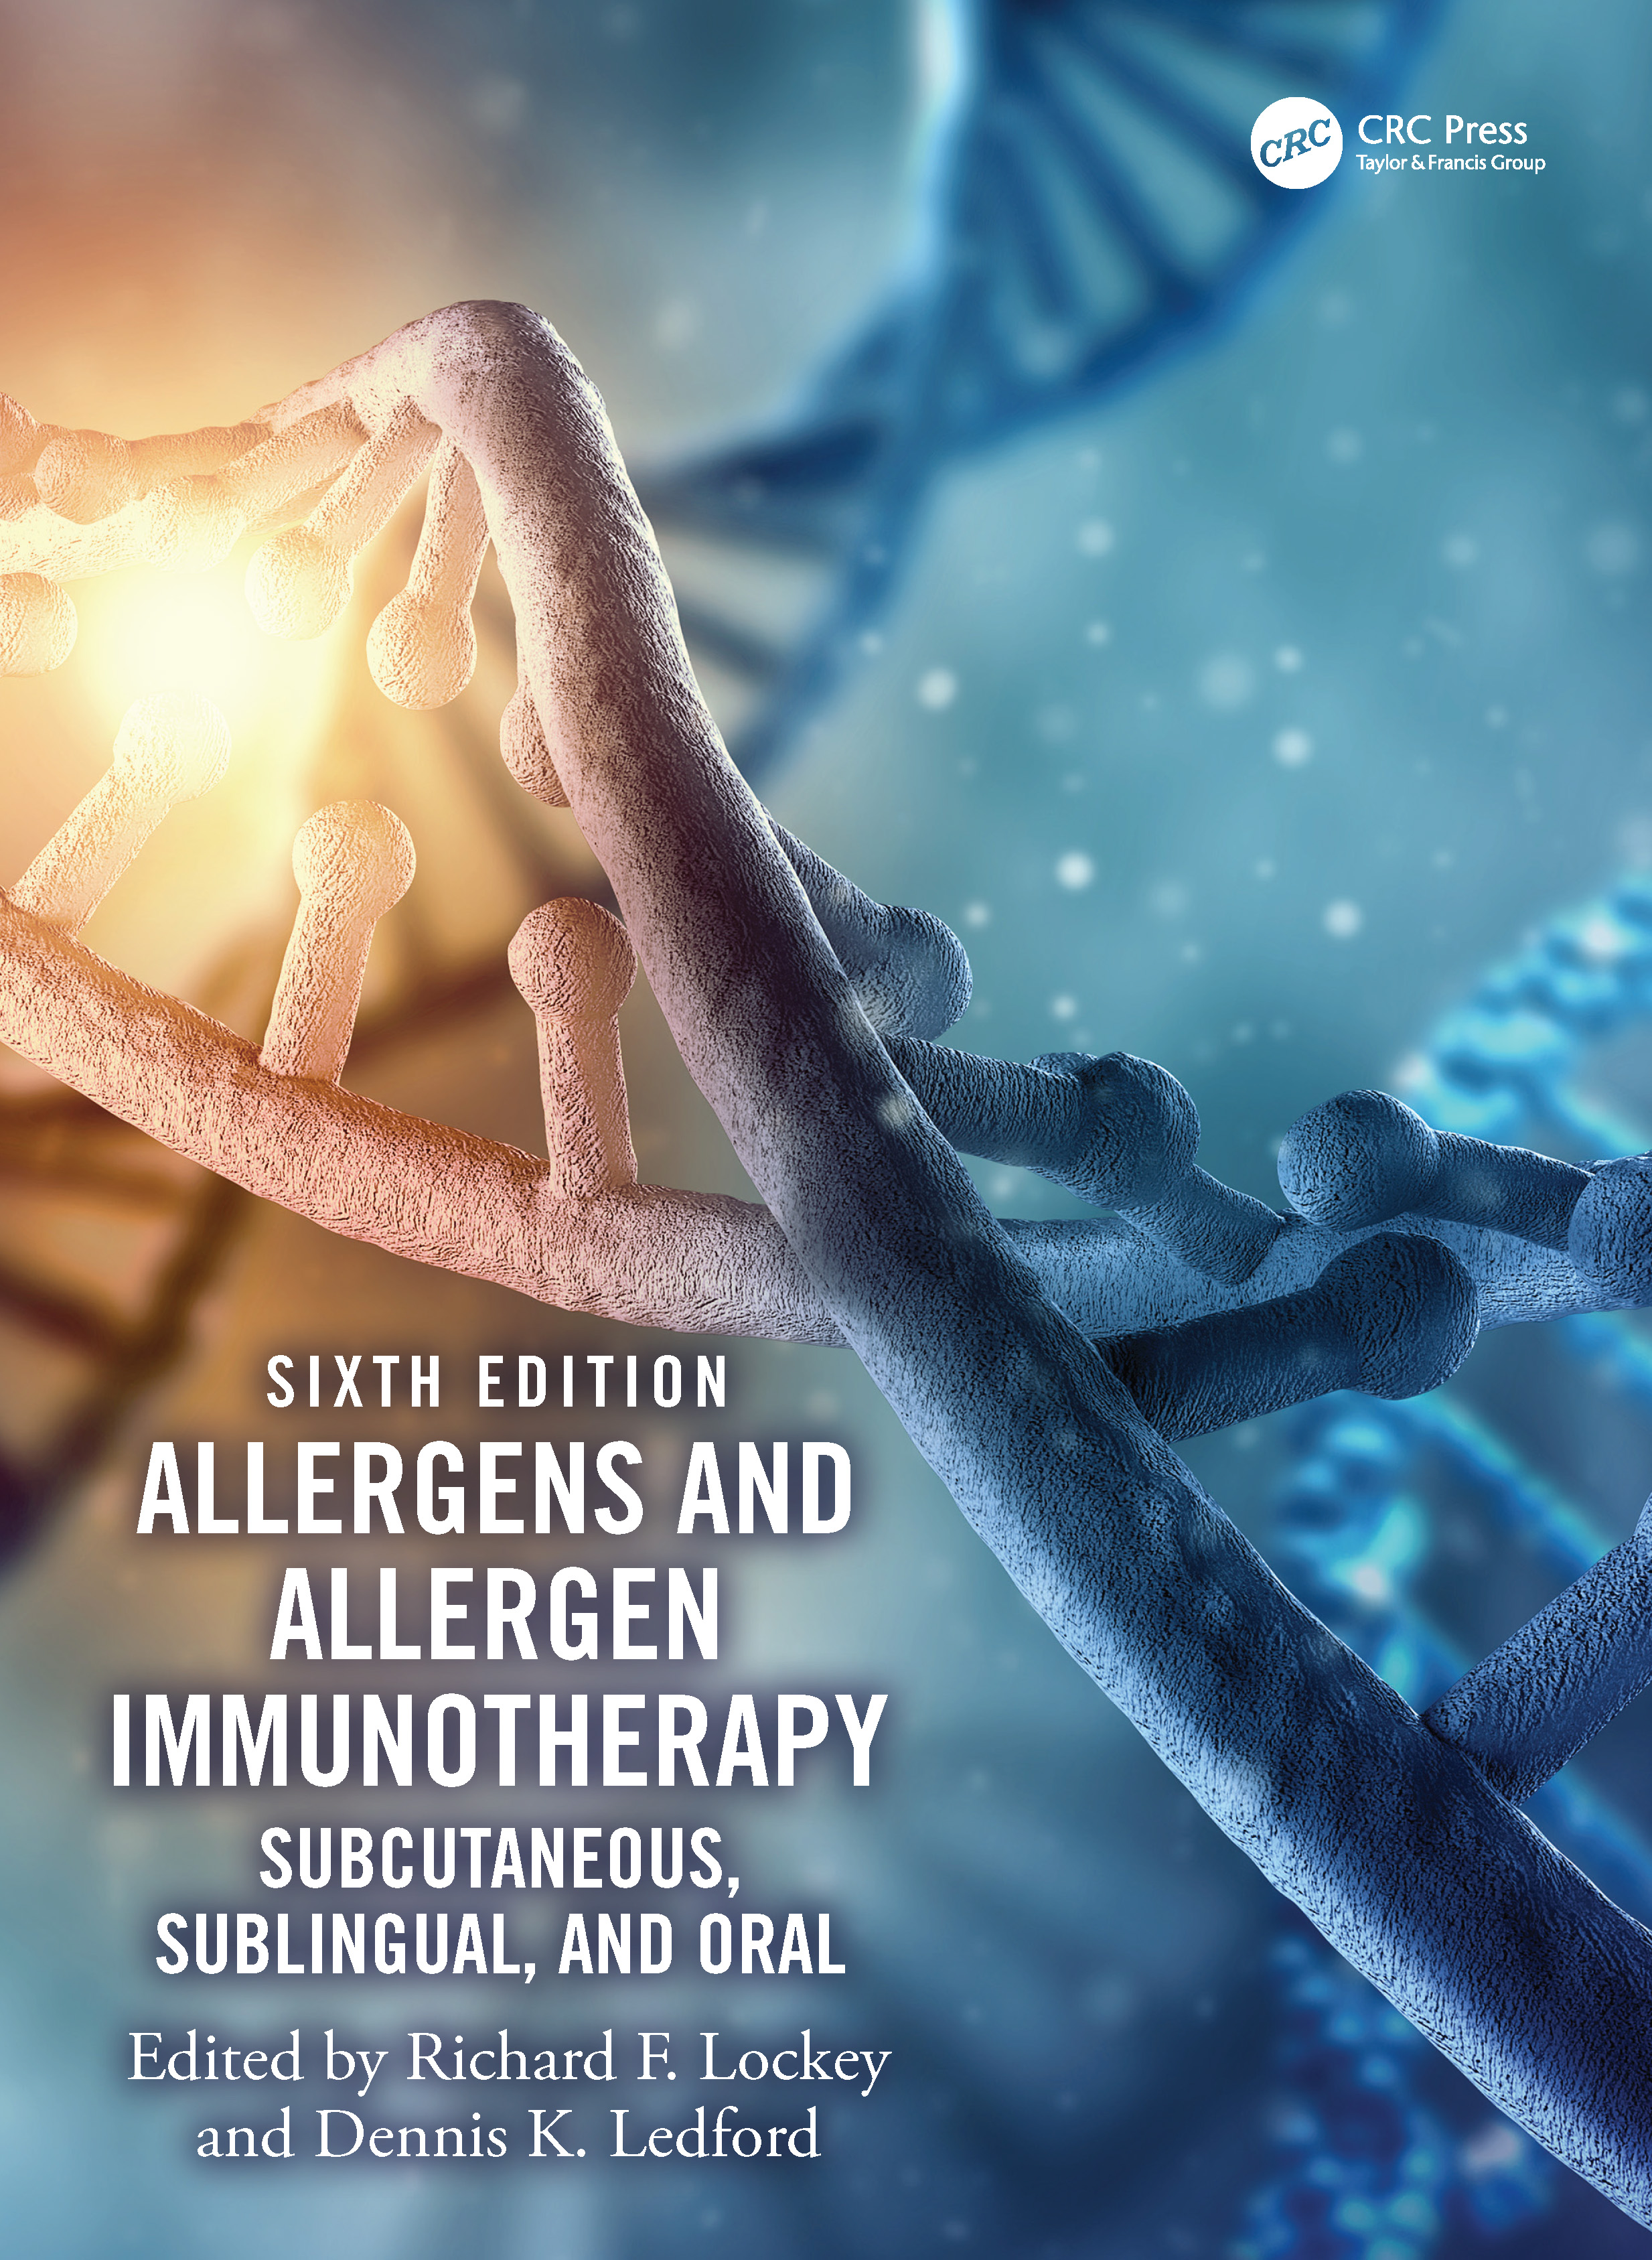 Allergens and Allergen Immunotherapy